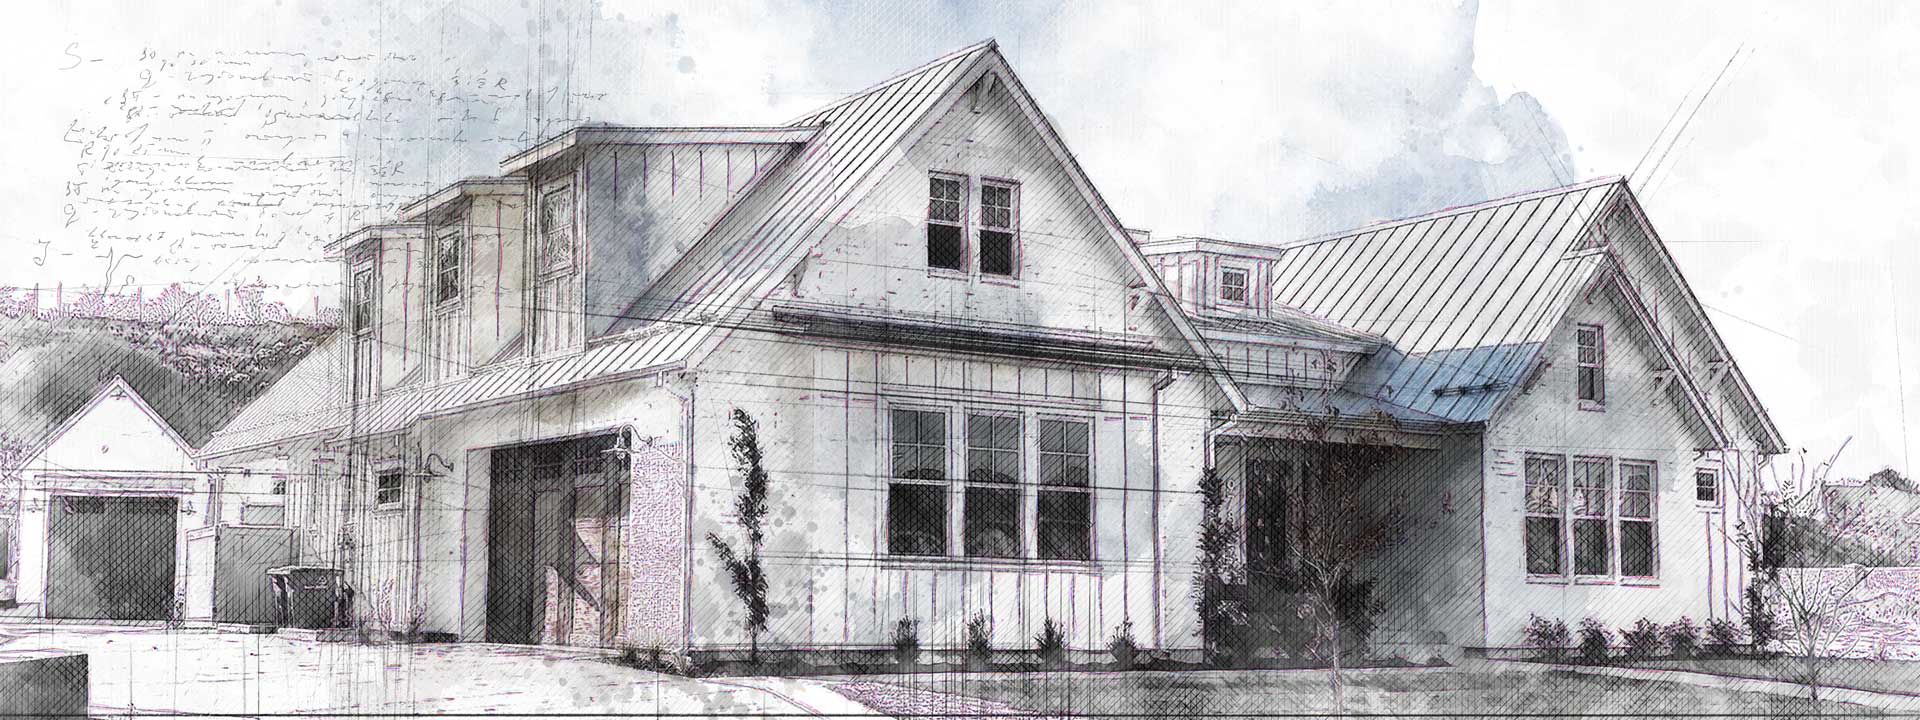 white river house plan exterior finished picture